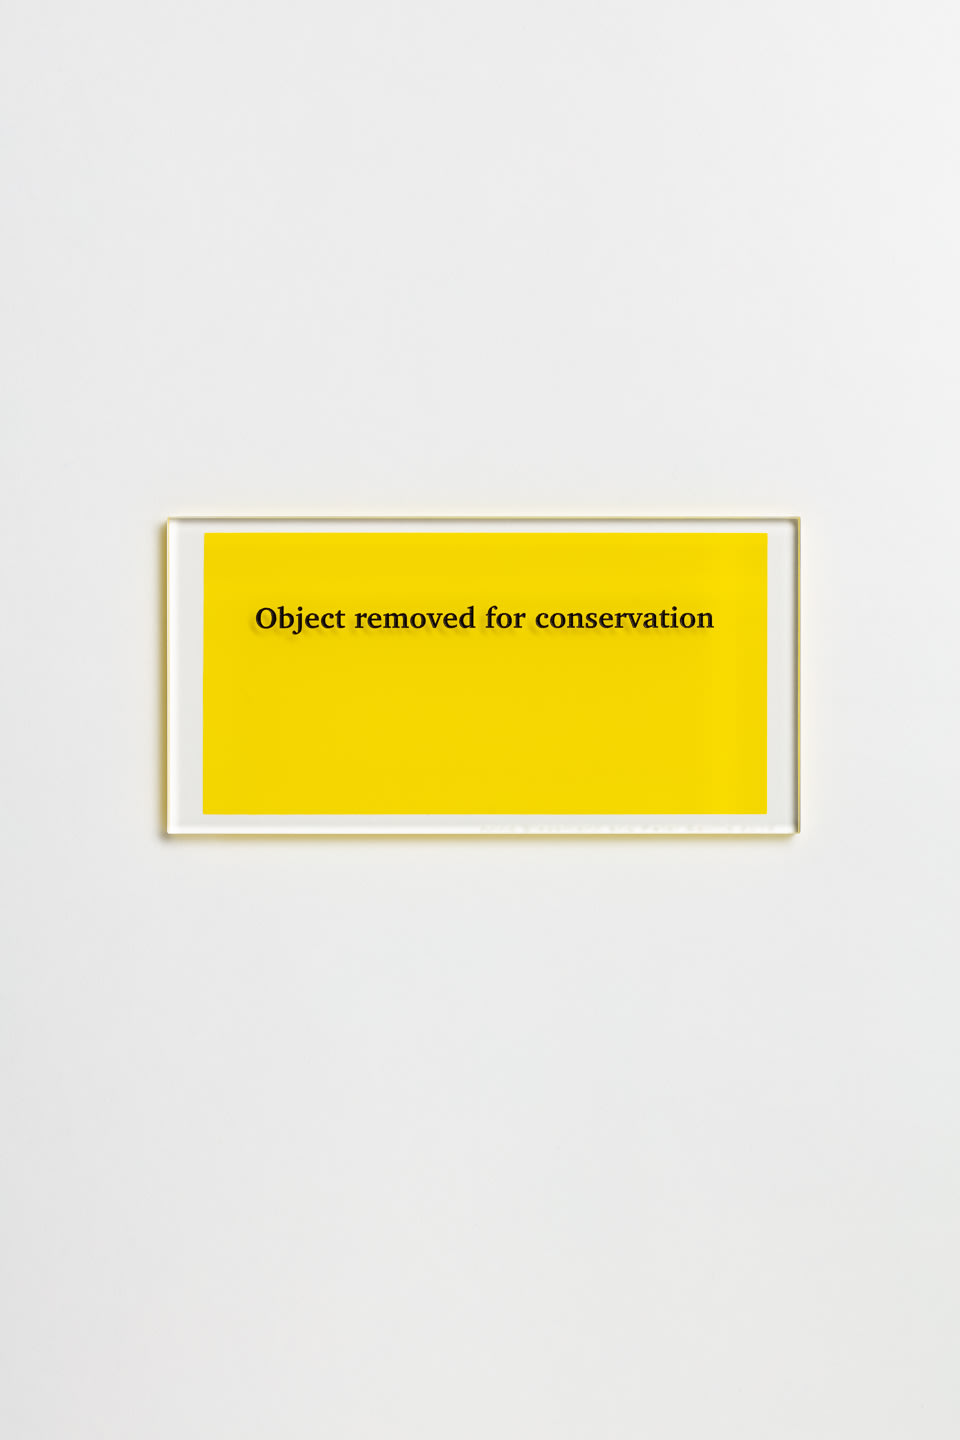 Anna Blessmann and Peter Saville Object removed for conservation, 2013 Clear 000 perspex with black type engraved font and pantone yellow C reverse, printed at 134mm wide x 67mm high. Accompanied by a signed certificate. 15 x 7.5 x 0.5cm Edition of 20